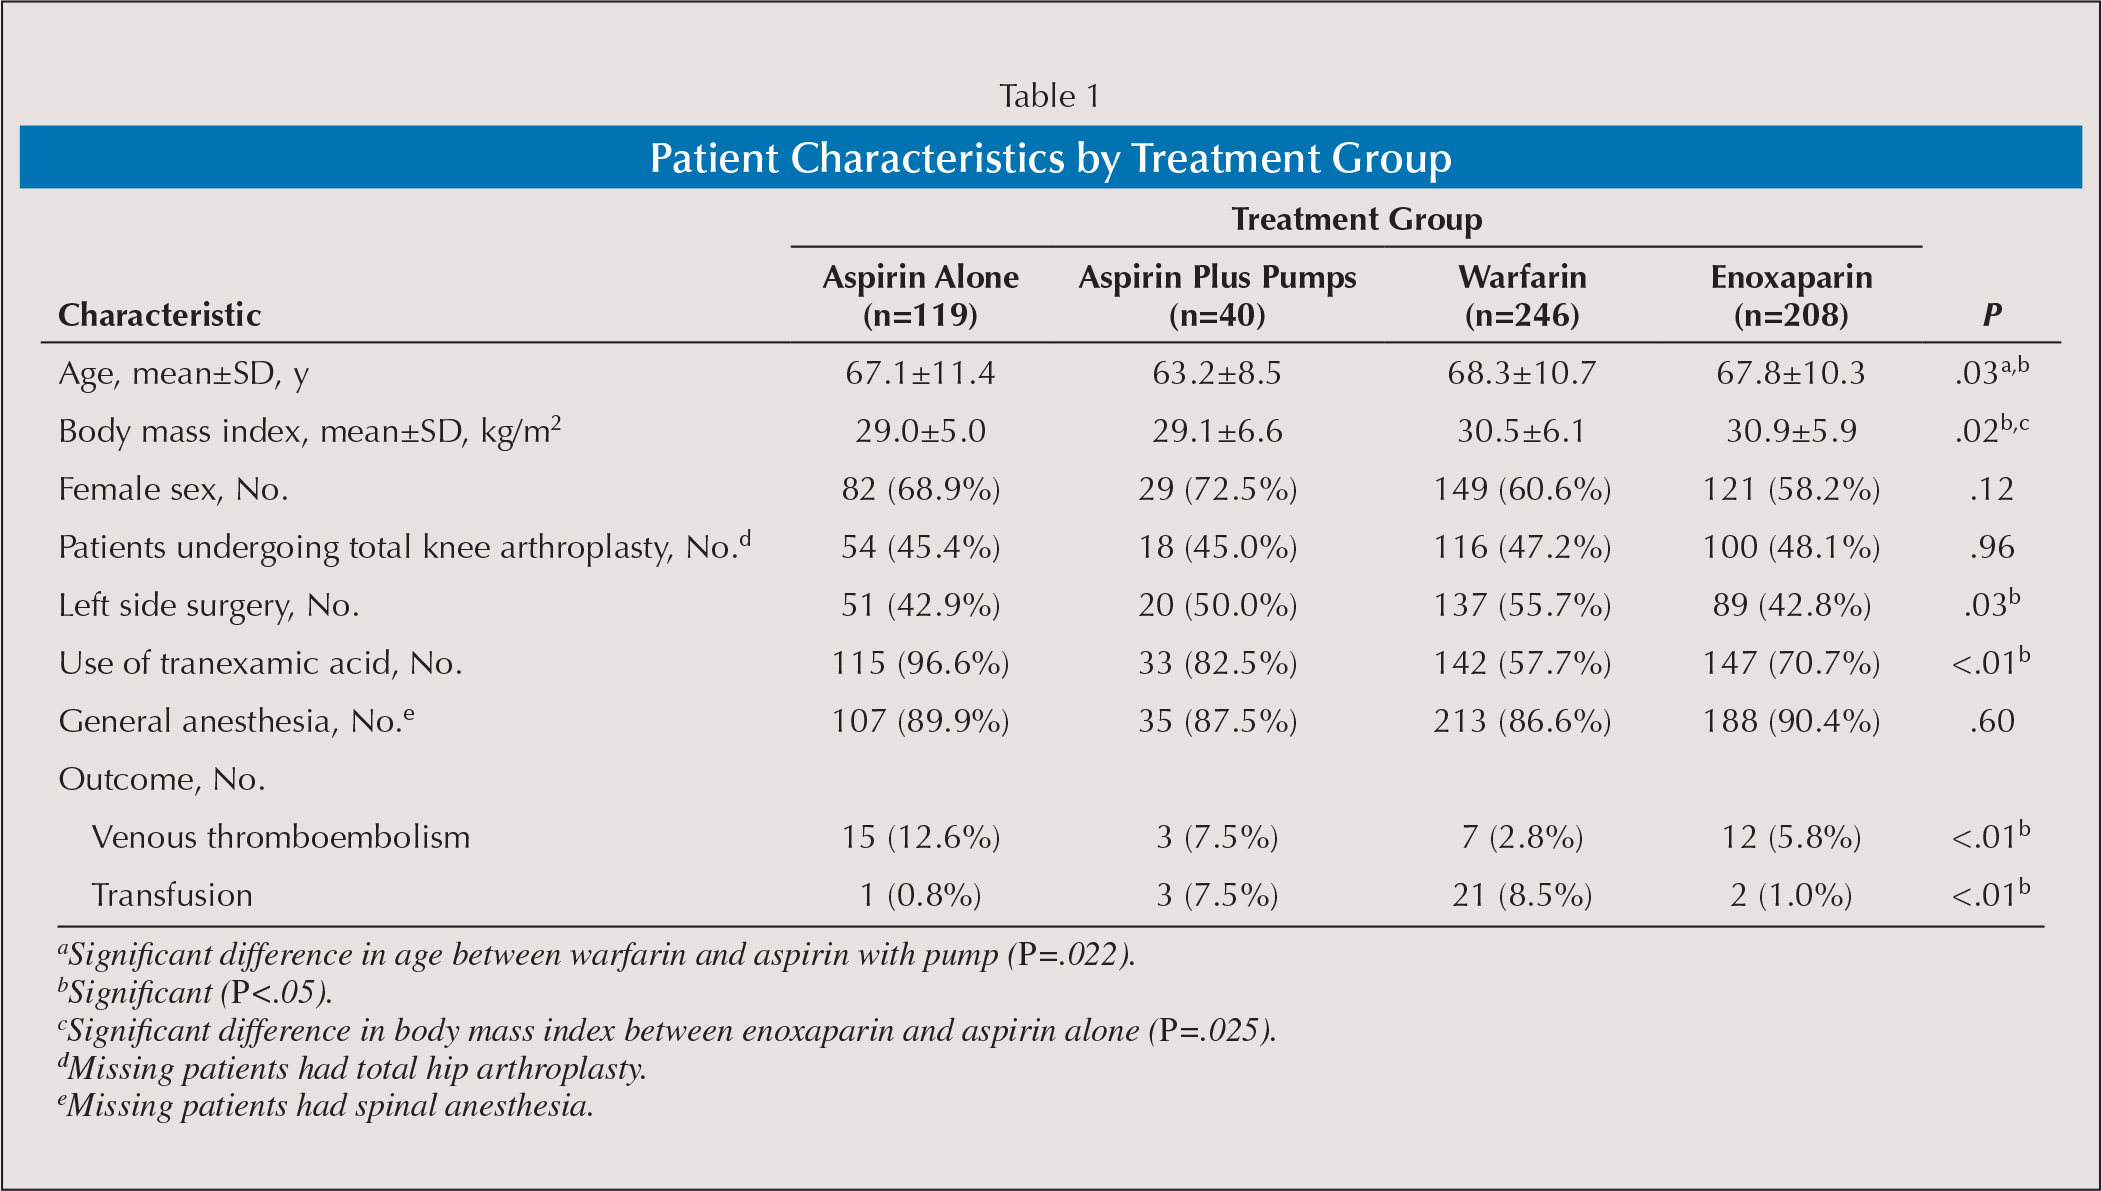 Patient Characteristics by Treatment Group